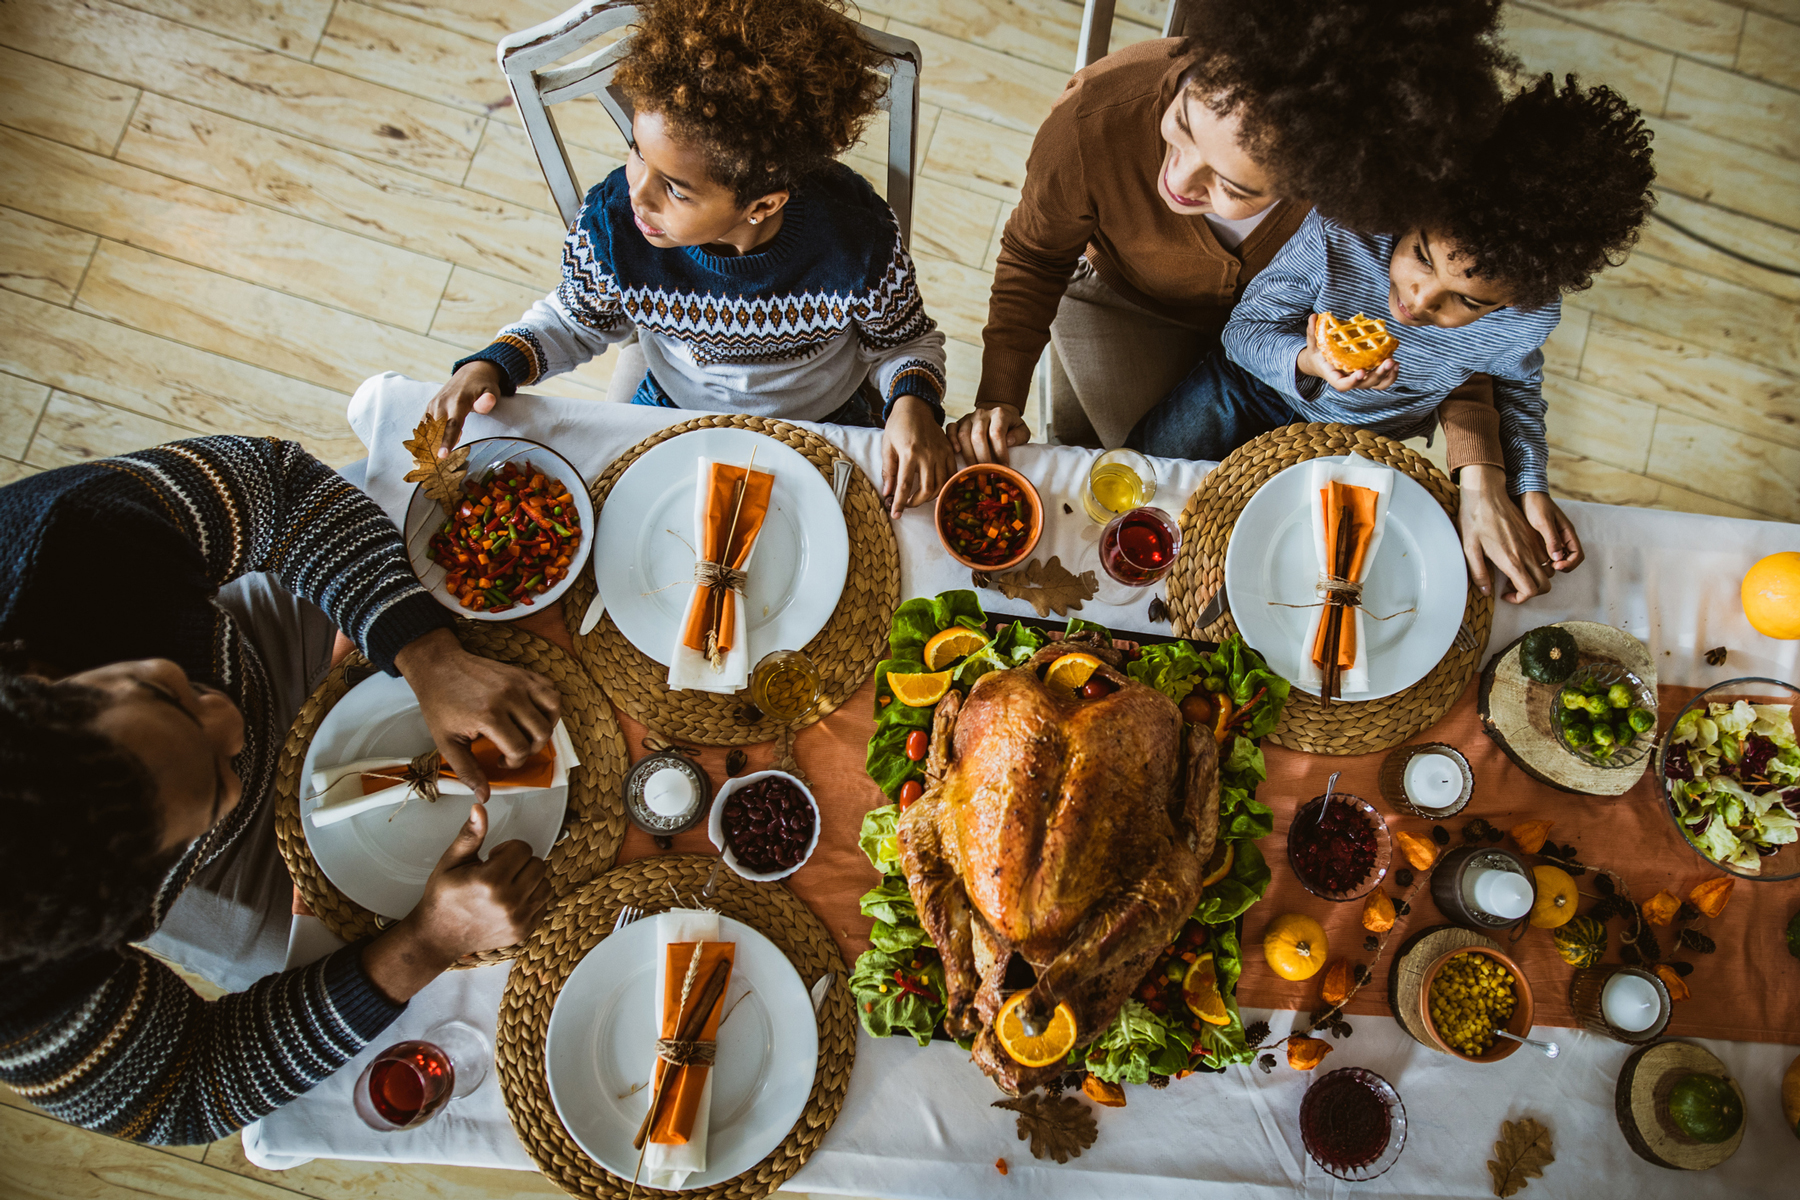 Above view of a family during Thanksgiving meal at dining table.